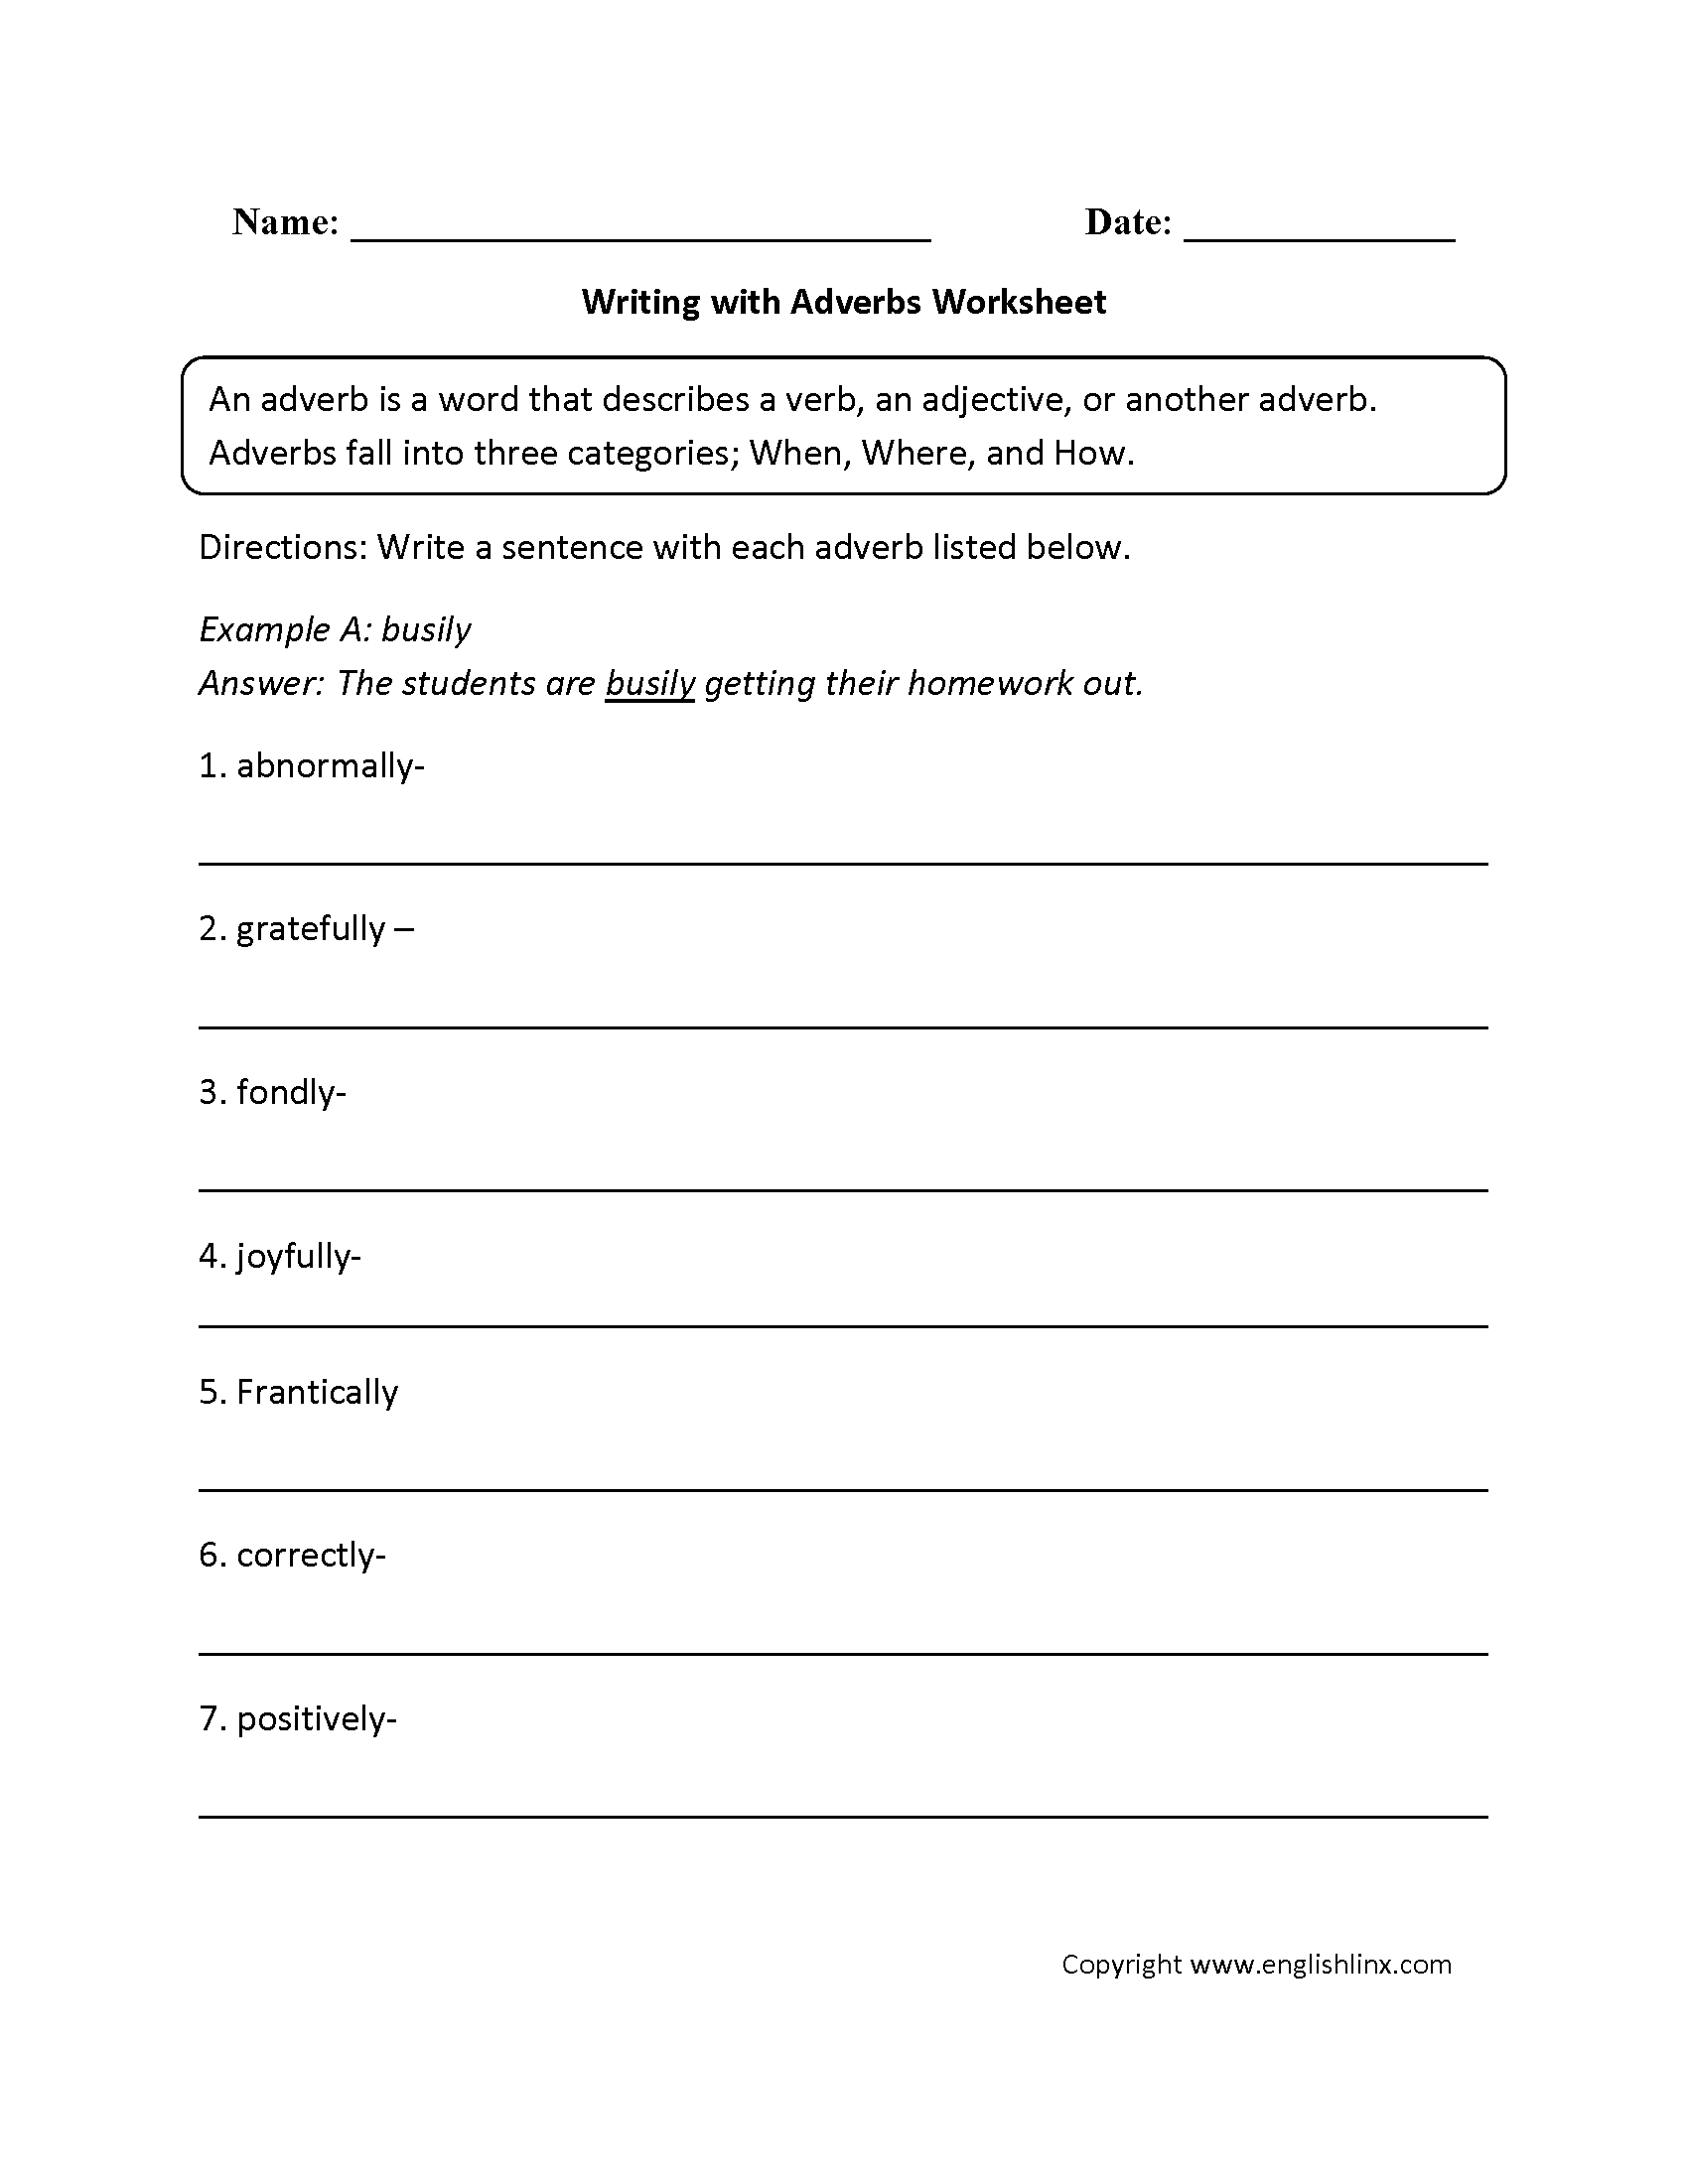 Adverbs Worksheets | Regular Adverbs Worksheets | Free Printable Worksheets On Adverbs For Grade 5